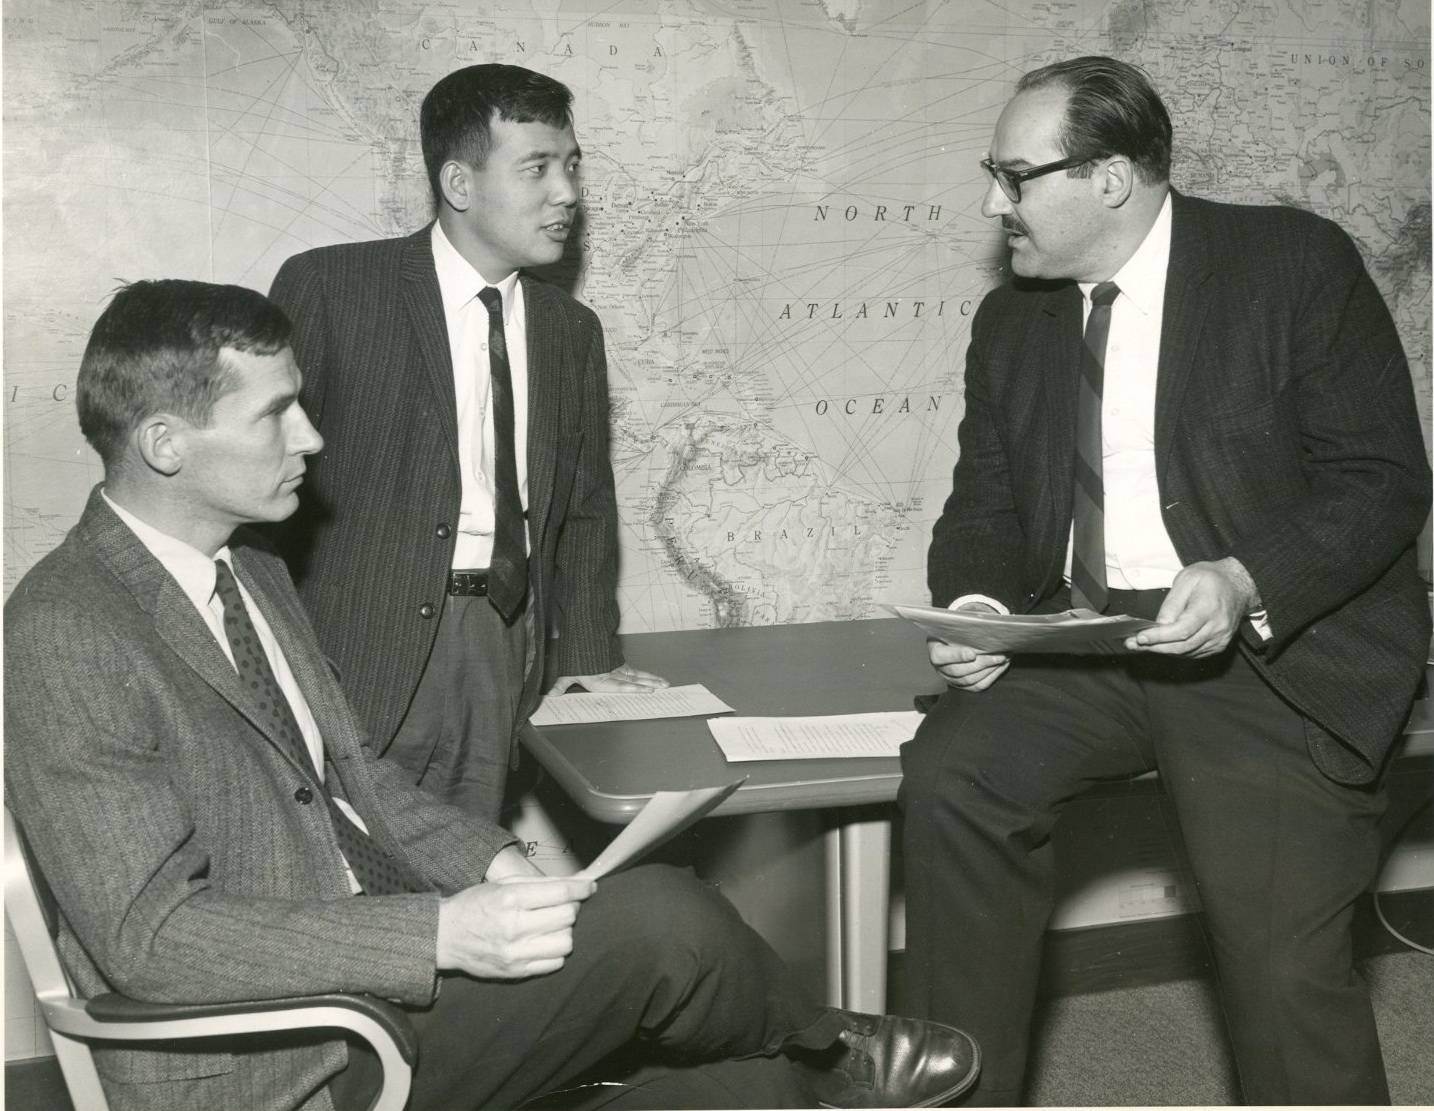 Syukuro Manabe (center) speaks with colleagues at Princeton University in 1969. | COURTESY OF THE GEOPHYSICAL FLUID DYNAMICS LABORATORY